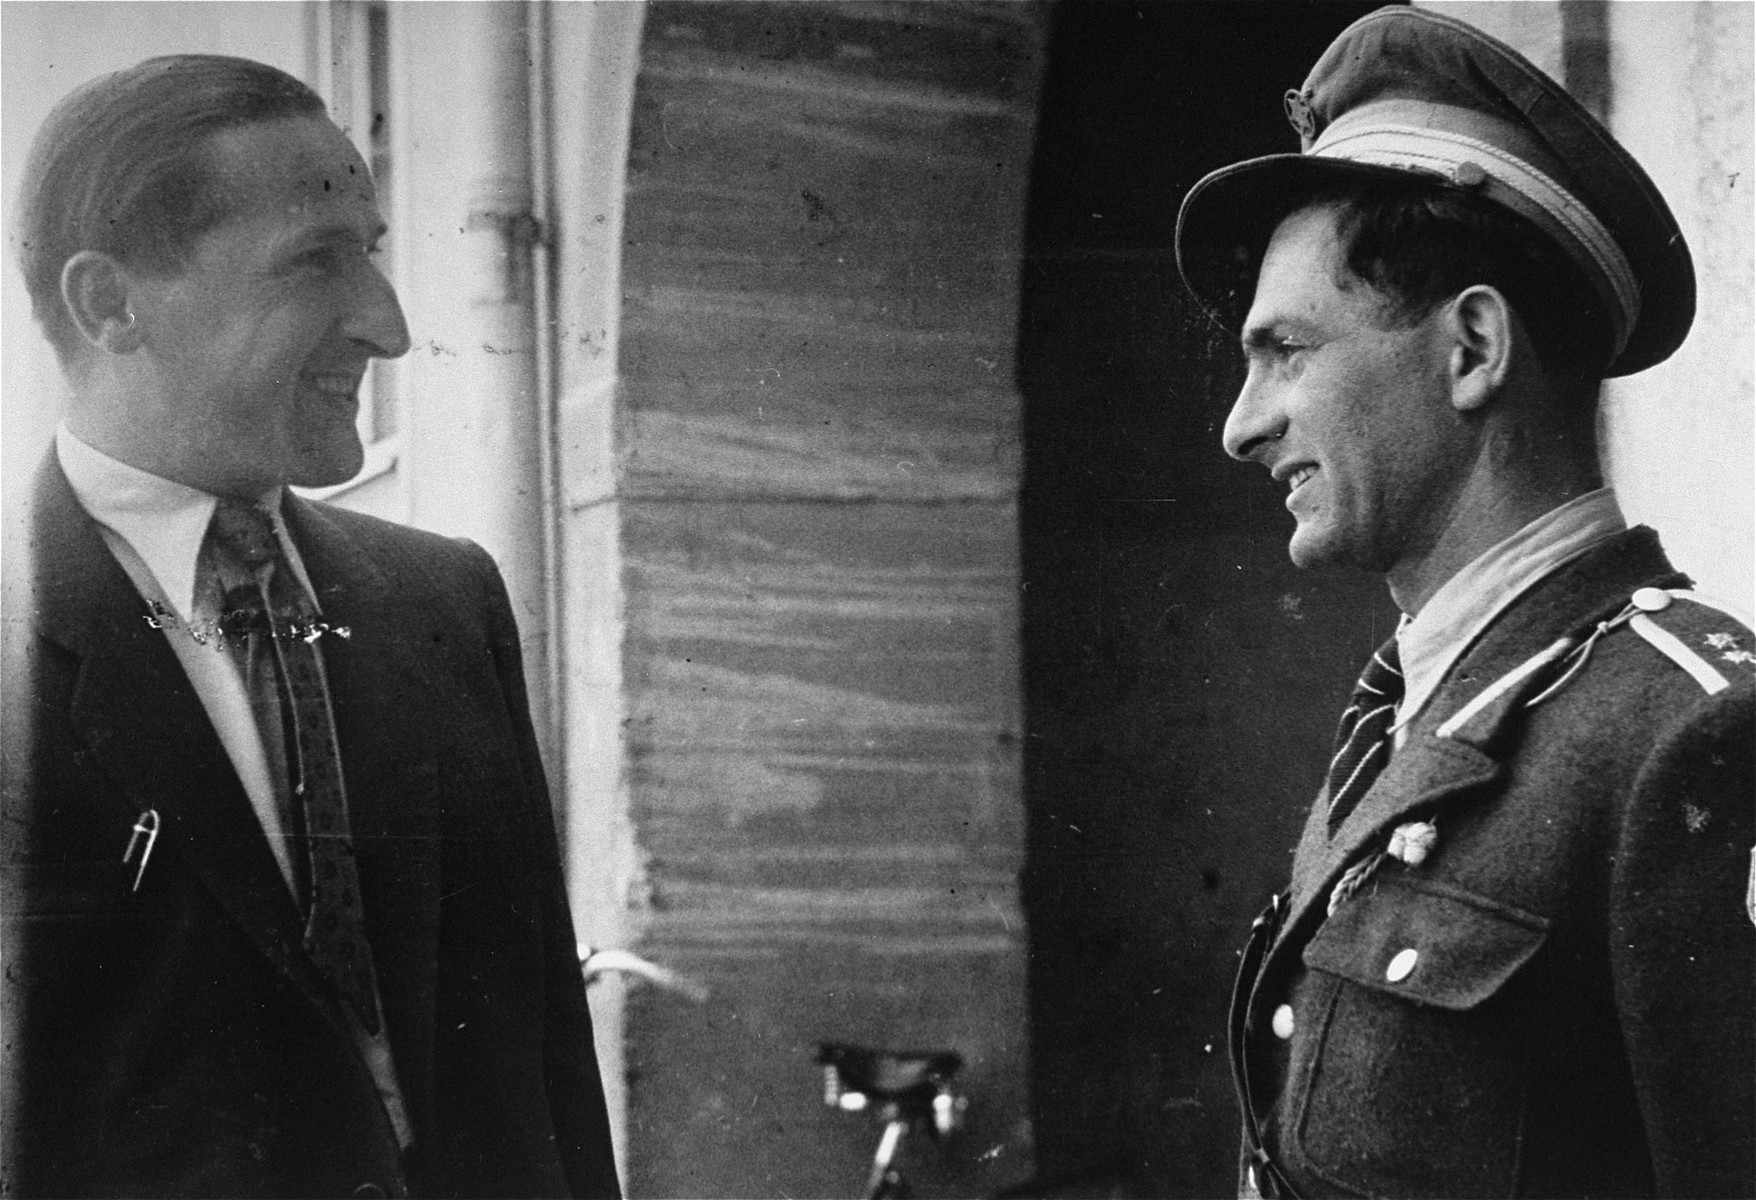 Willie Sterner (right), police chief of the Bindermichl displaced persons camp, in conversation with the mayor.